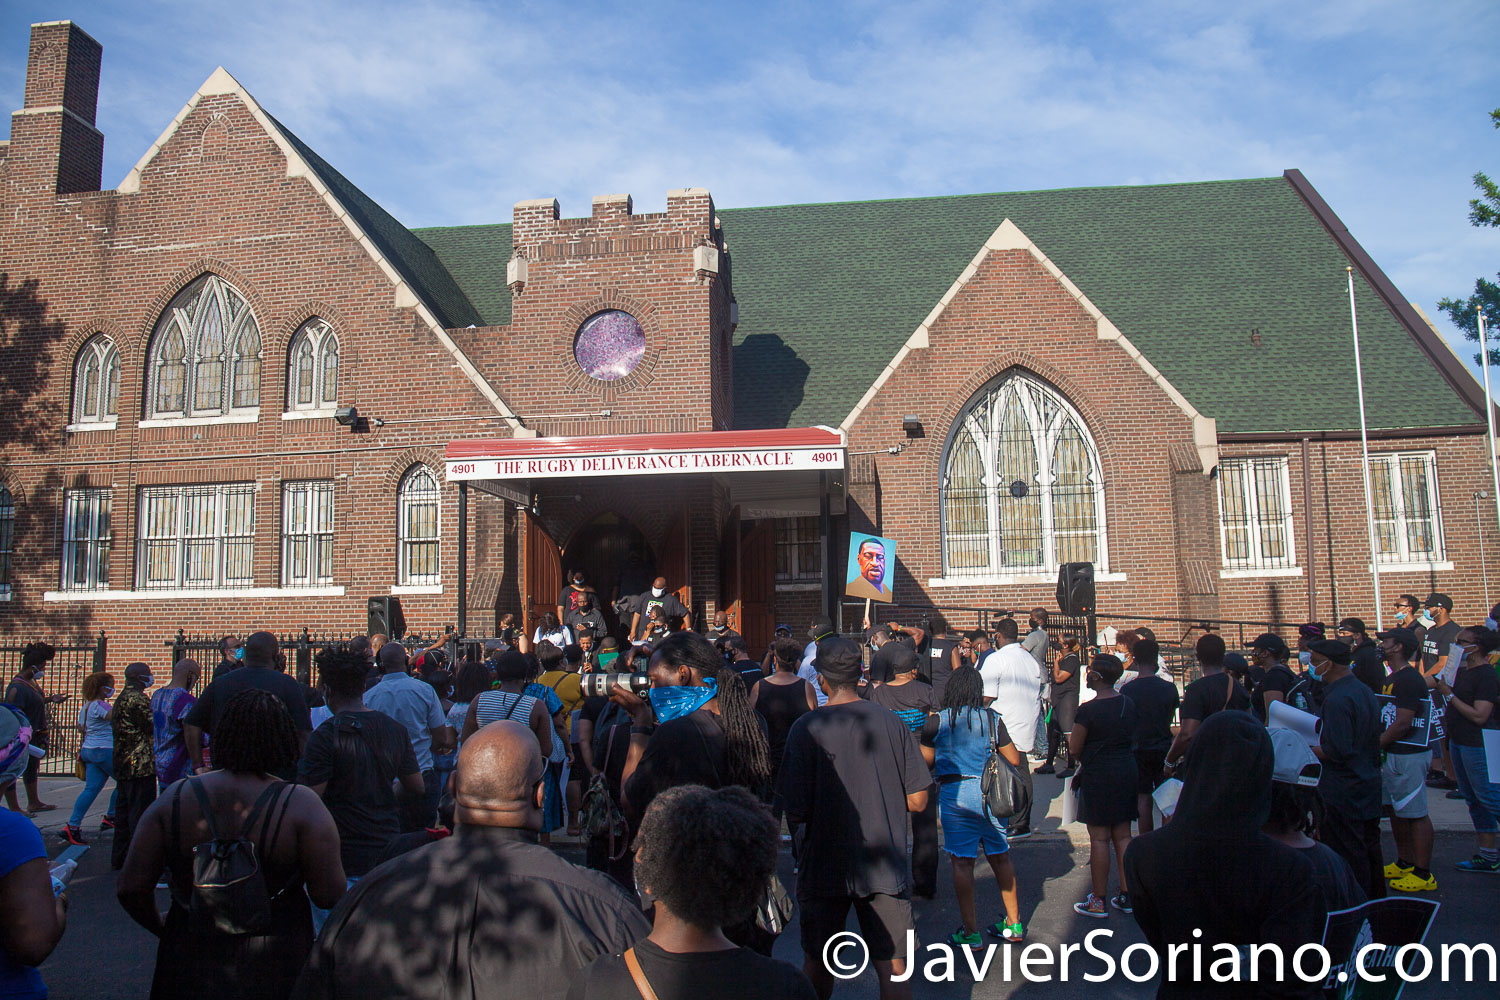 "Sunday, June 21, 2020. New York City – ""Father's Day. Faith Leaders Prayer and March"" in East Flatbush, Brooklyn. Protestors said they were praying for peace and justice. They marched ""in solidarity and support of the fight of systemic racism."" People marched from Nostrand Avenue and Church Avenue to The Rugby Deliverance Tabernacle on 4901 Snyder ave. Photo by Javier Soriano/www.JavierSoriano.com"